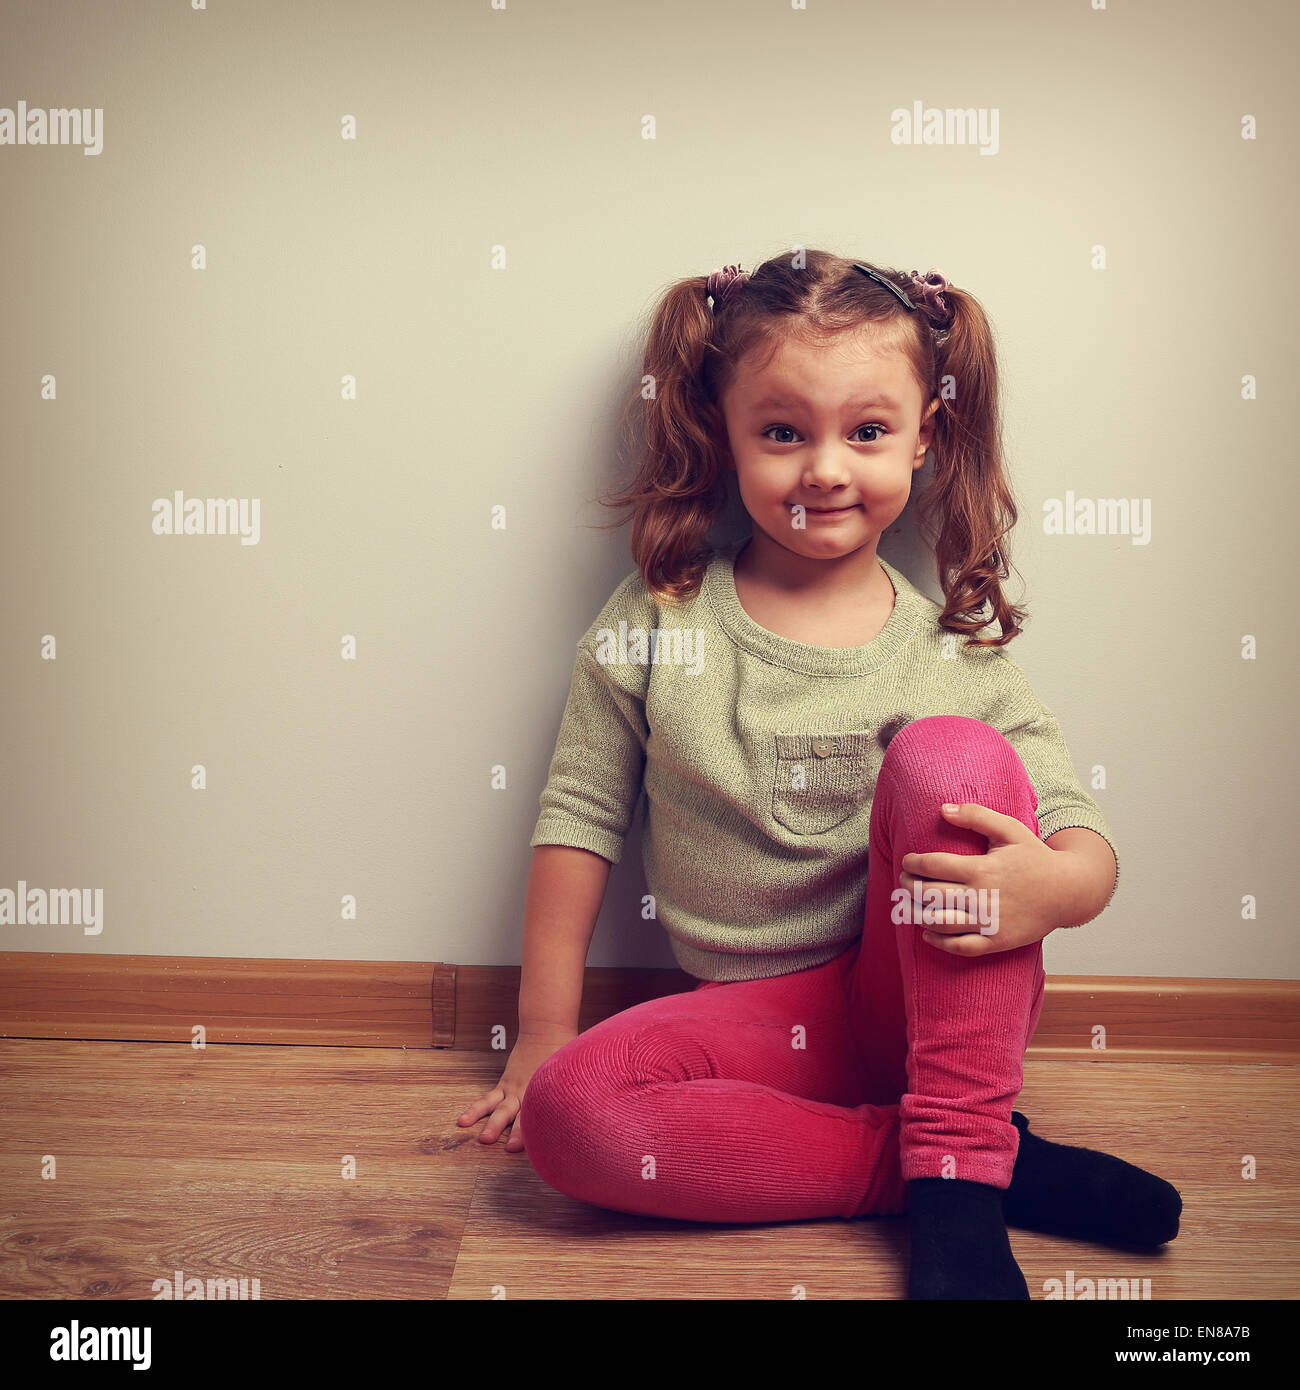 Grimacing fashion girl sitting on the floor and smiling. Vintage closeup portrait - Stock Image